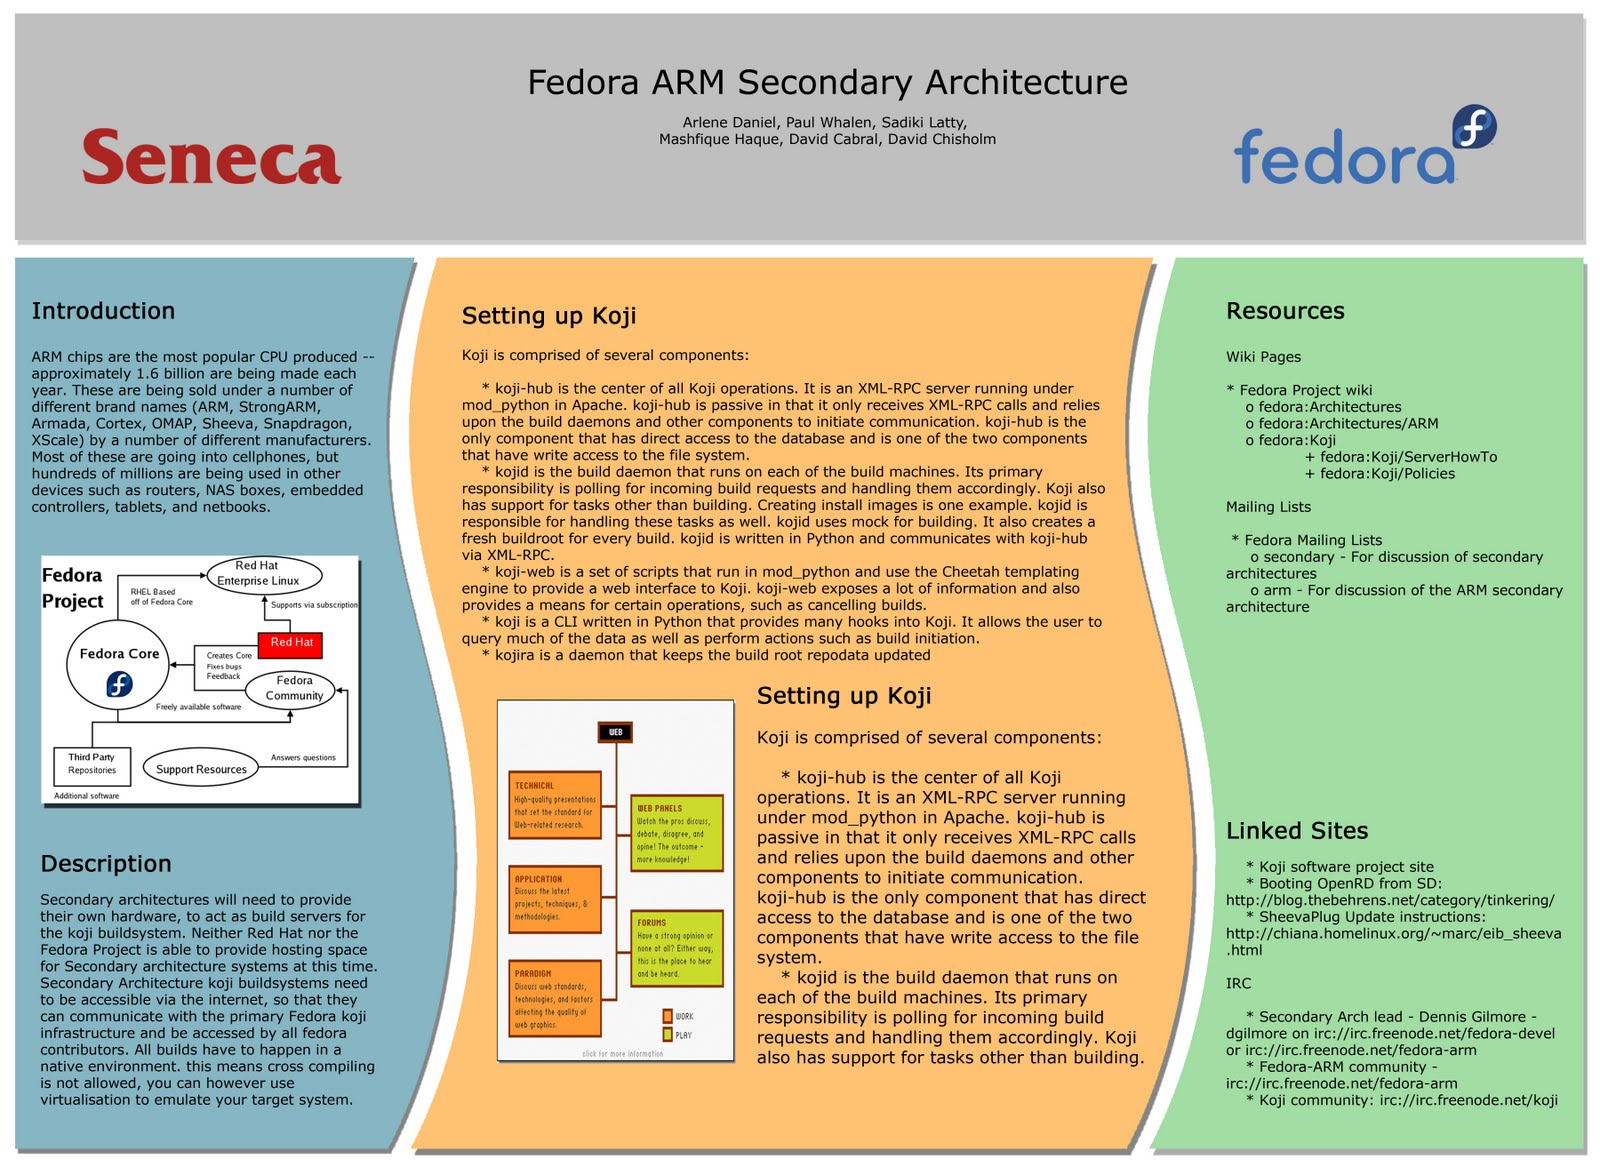 Mash's Blog for SBR600: Poster Template for Fedora ARM